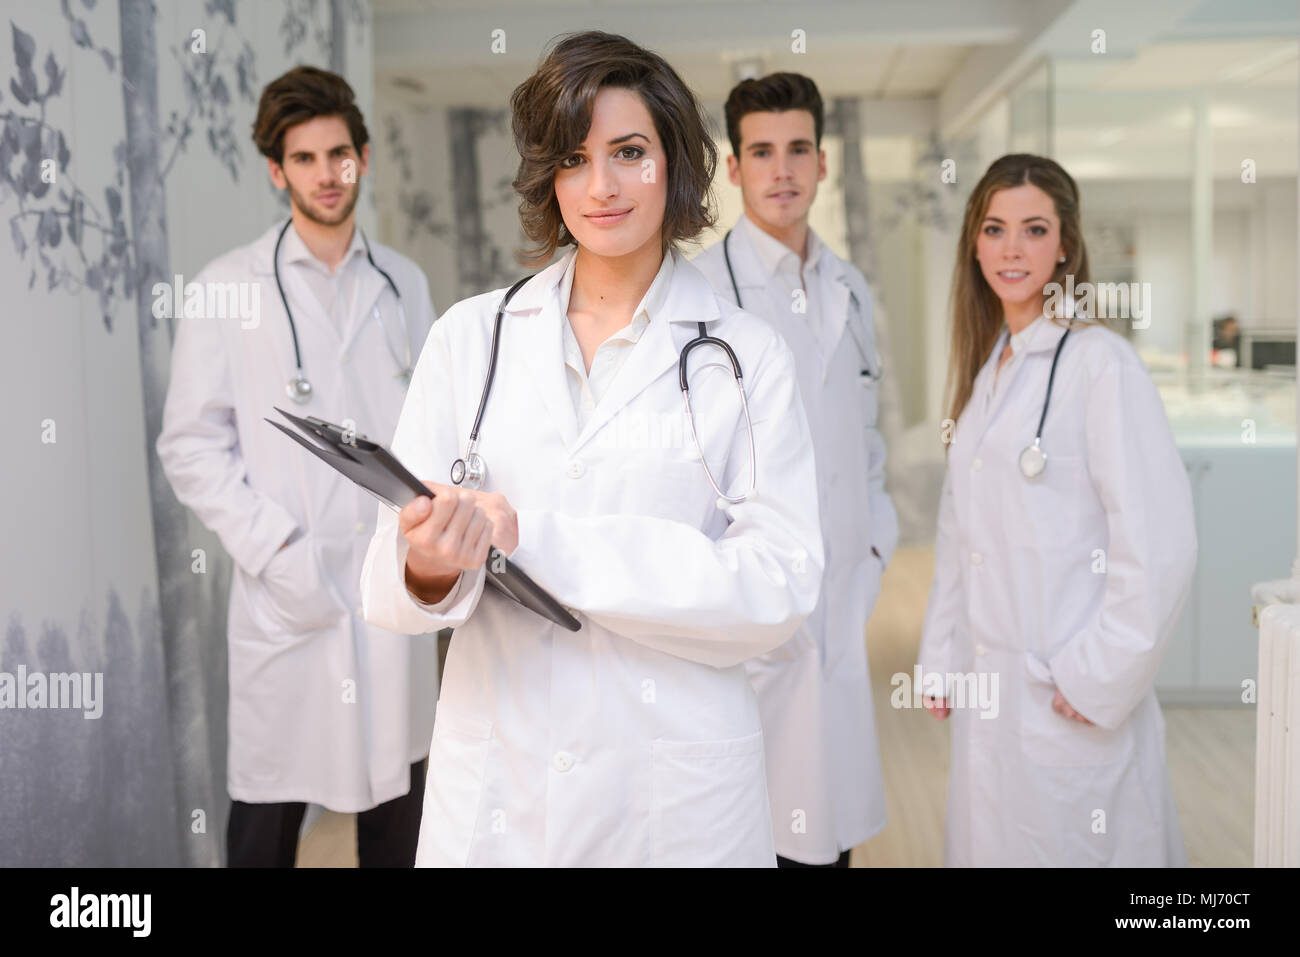 Portrait of group of medical workers portrait in hospital - Stock Image